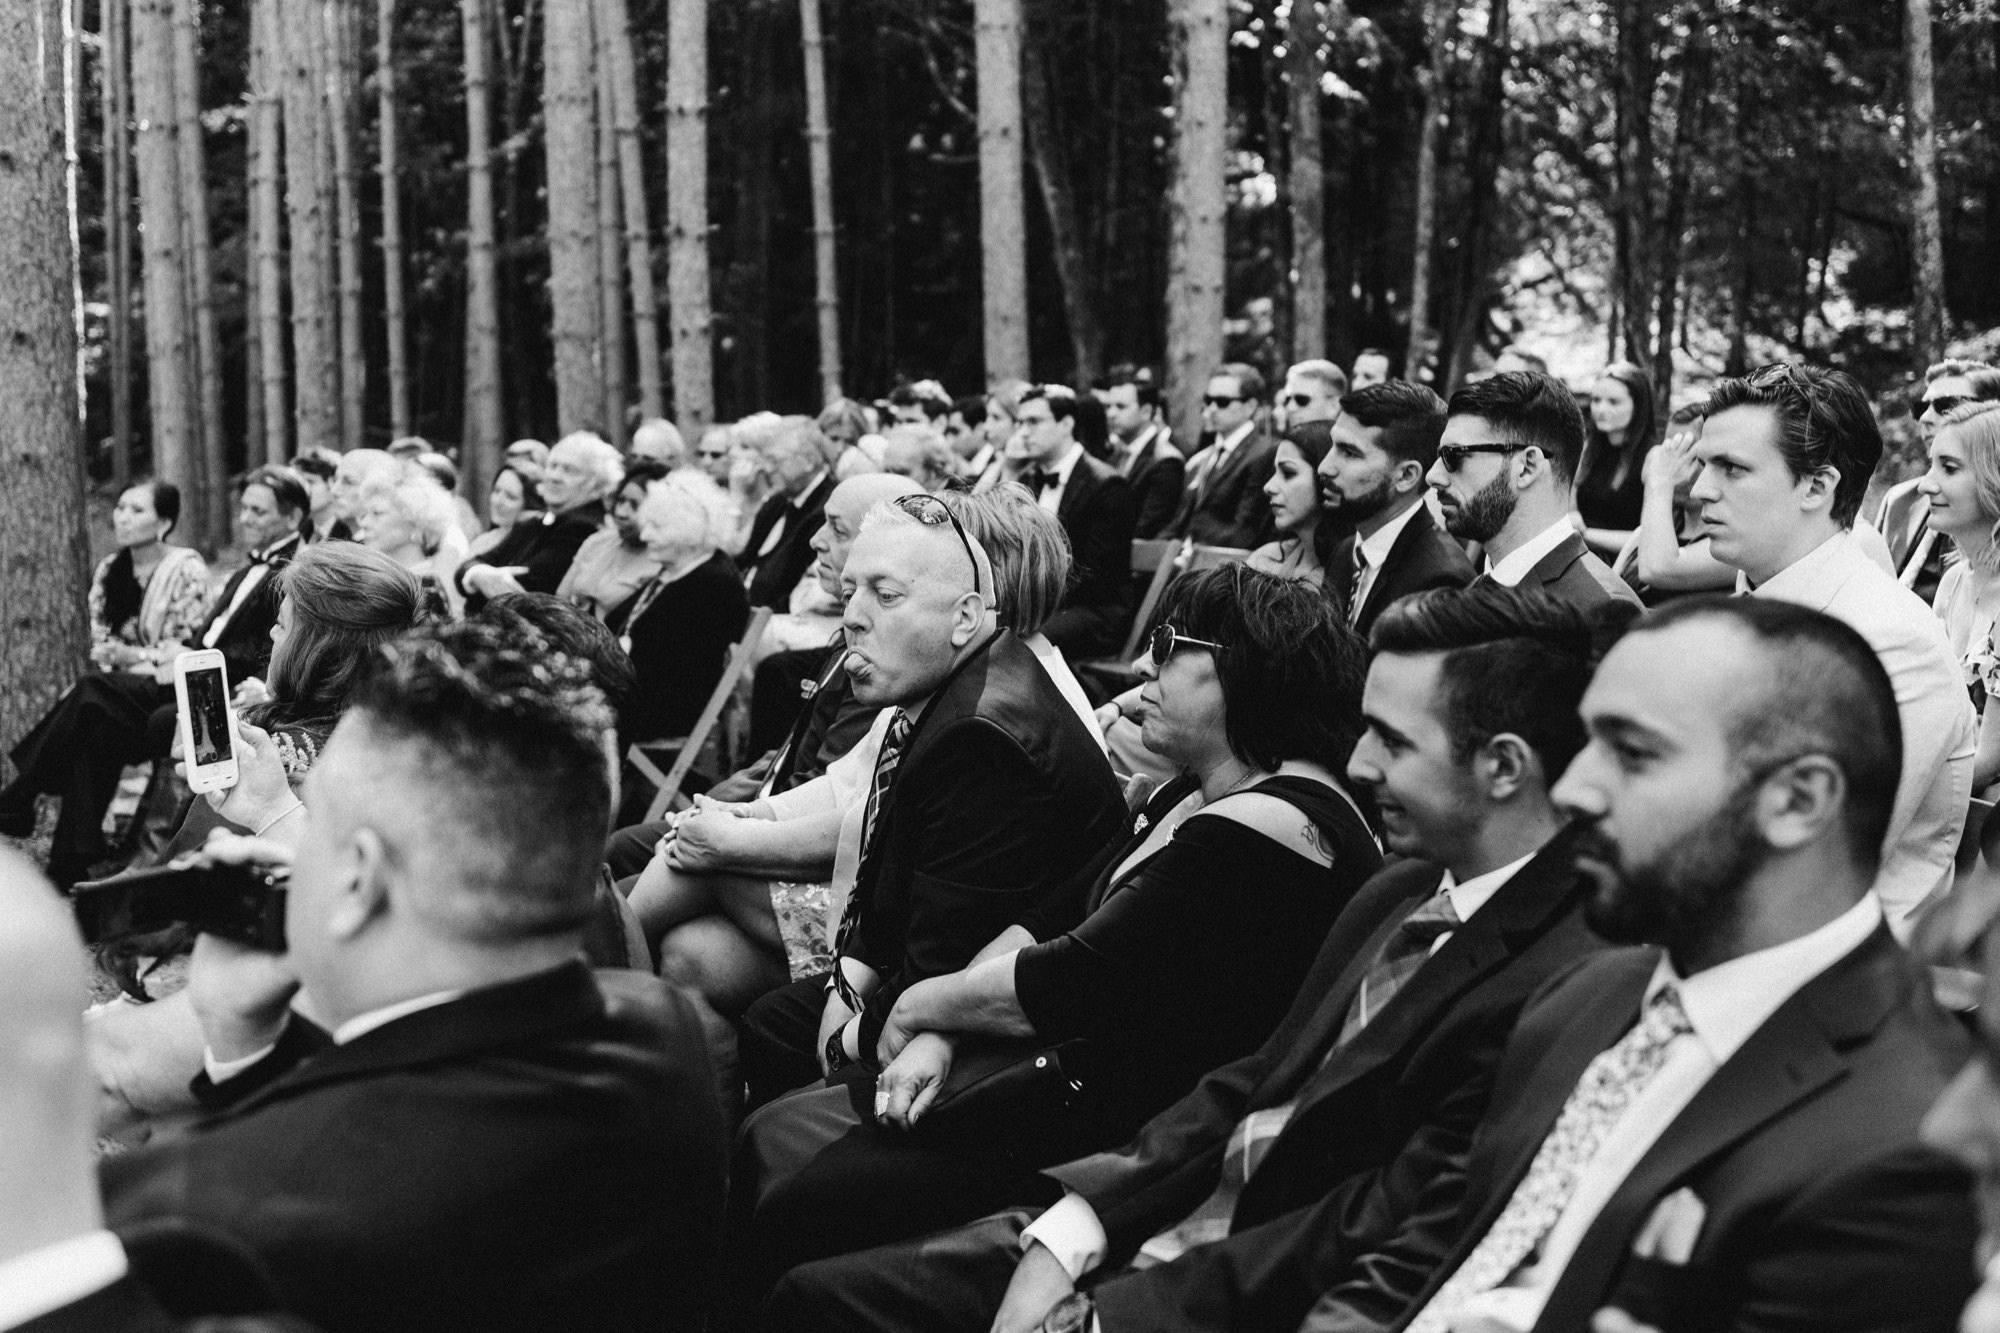 Guest poking out tongue during wedding ceremony at the Pine Grove location at Roxbury Barn Estate in the Catskills New York